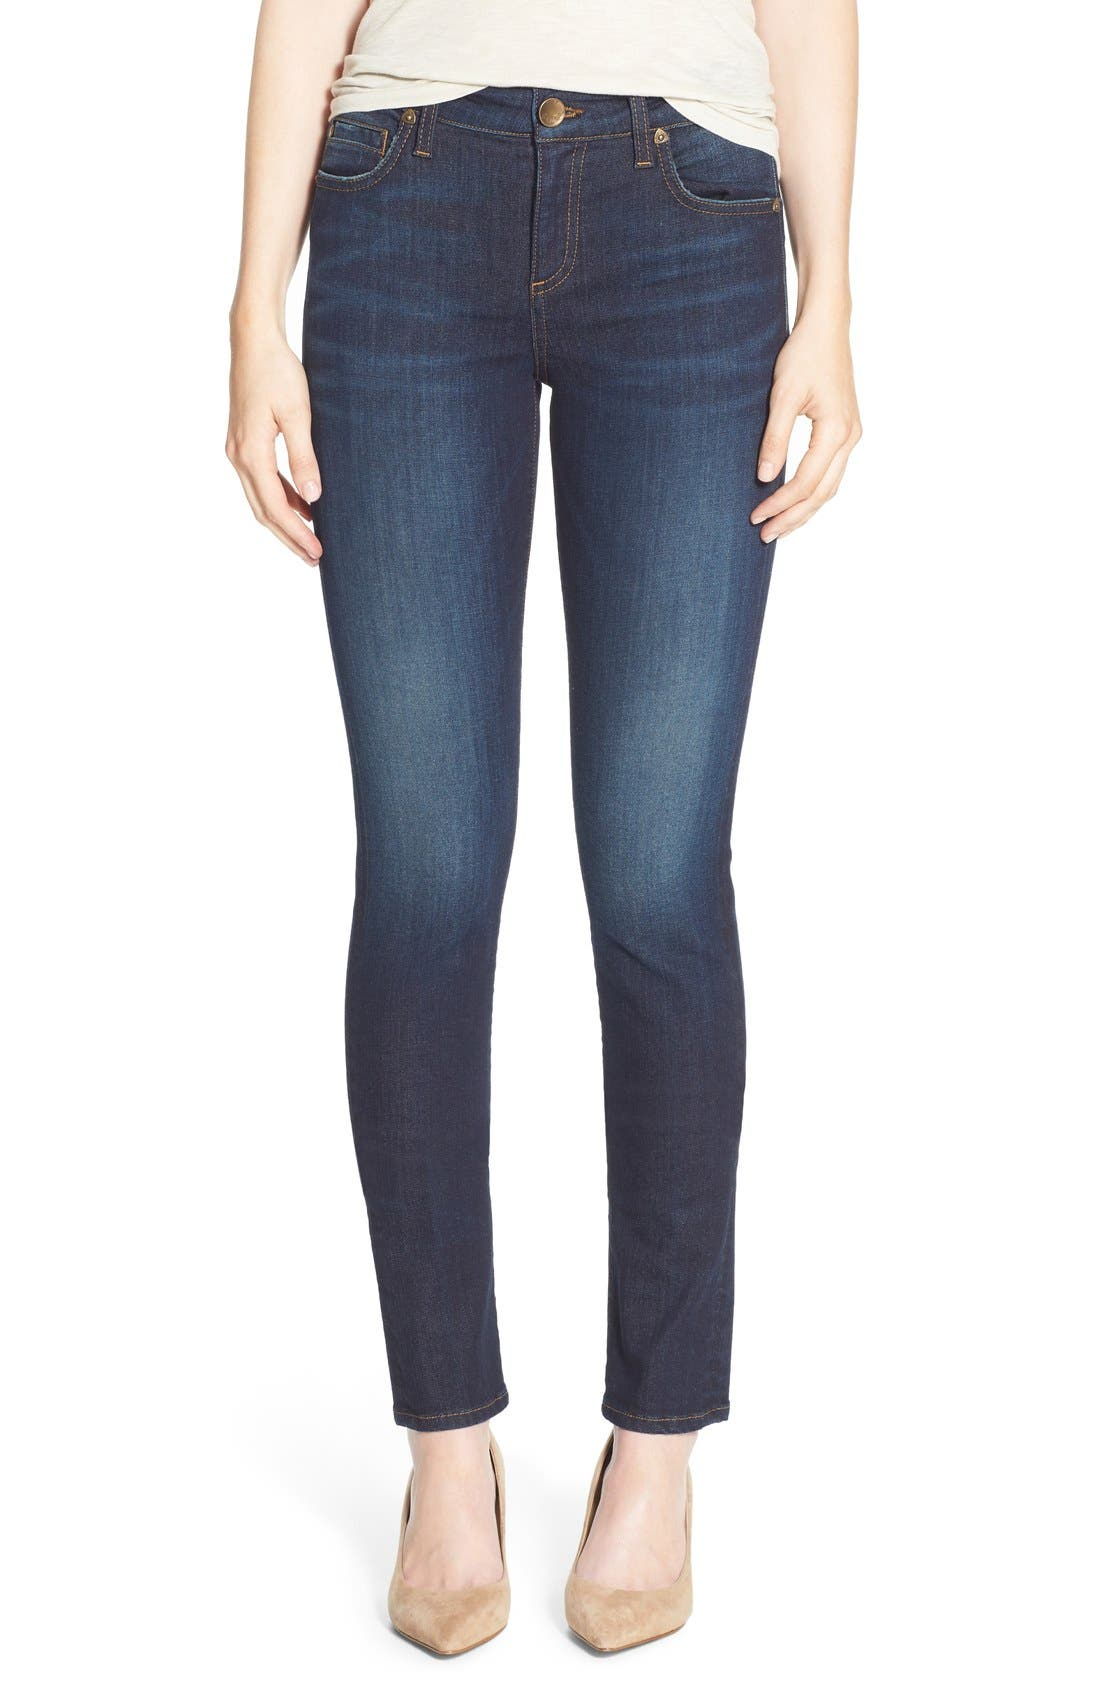 'Diana' Stretch Skinny Jeans,                         Main,                         color, Blinding